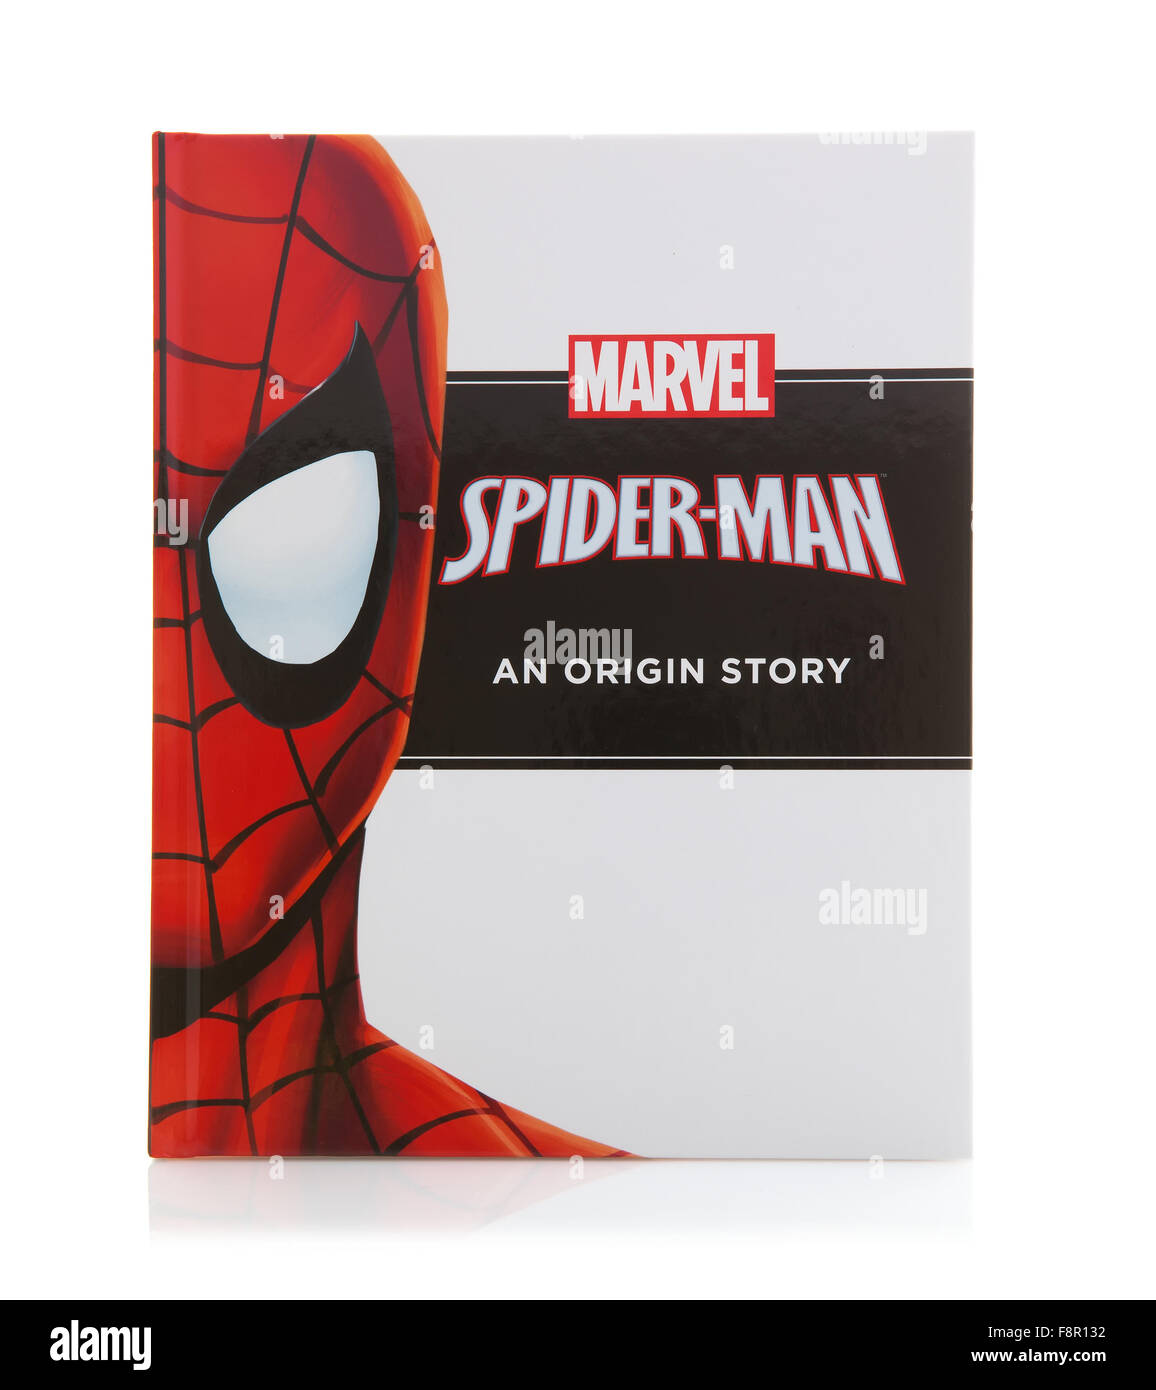 MARVEL Book Spider-man an Origin Super Hero Story on a White Background - Stock Image